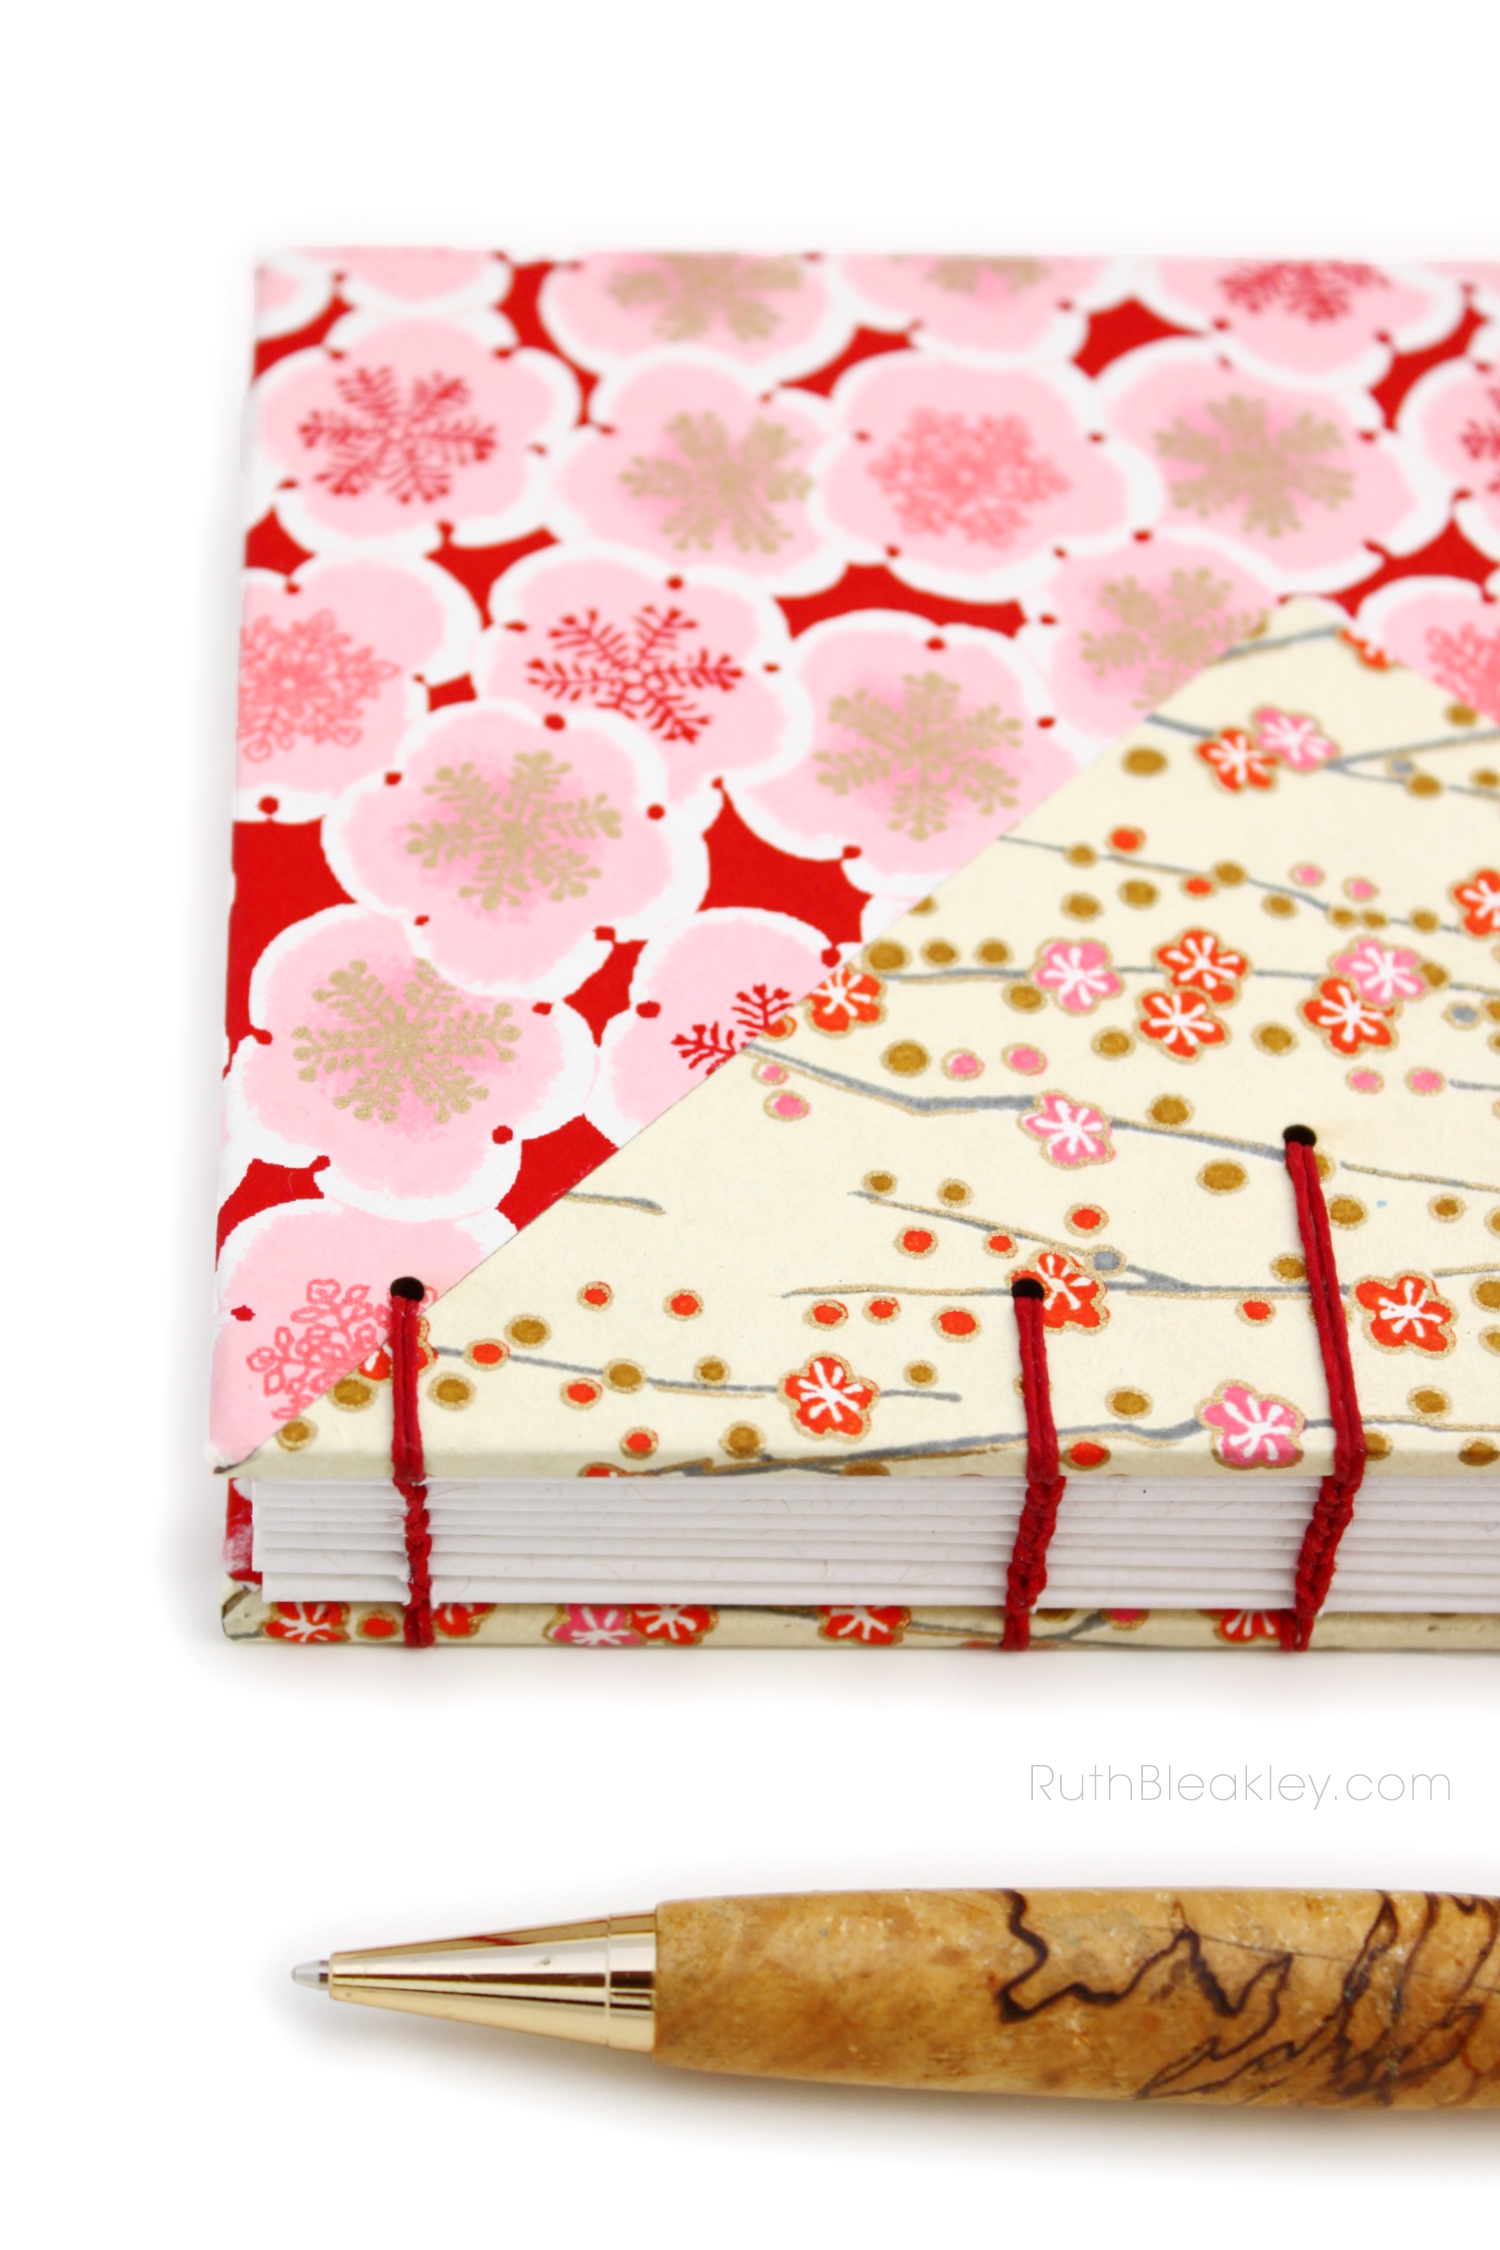 Cherry Blossom and Plum Blossom Twin Journals handmade by book artist Ruth Bleakley